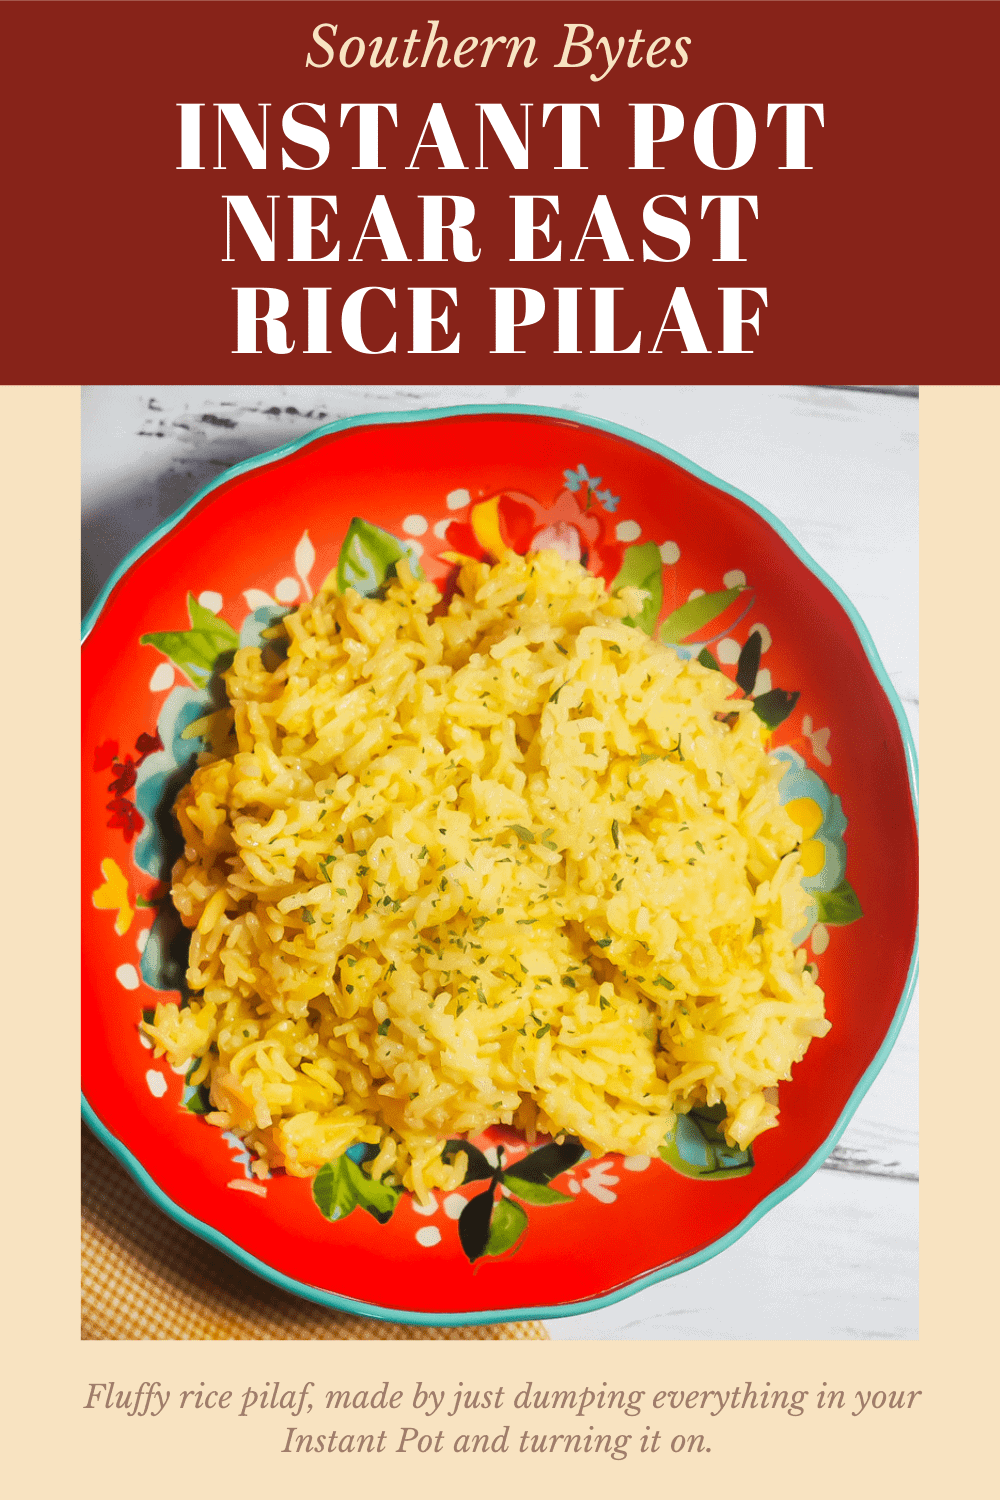 A pin image of a red bowl filled with Instant Pot rice pilaf.